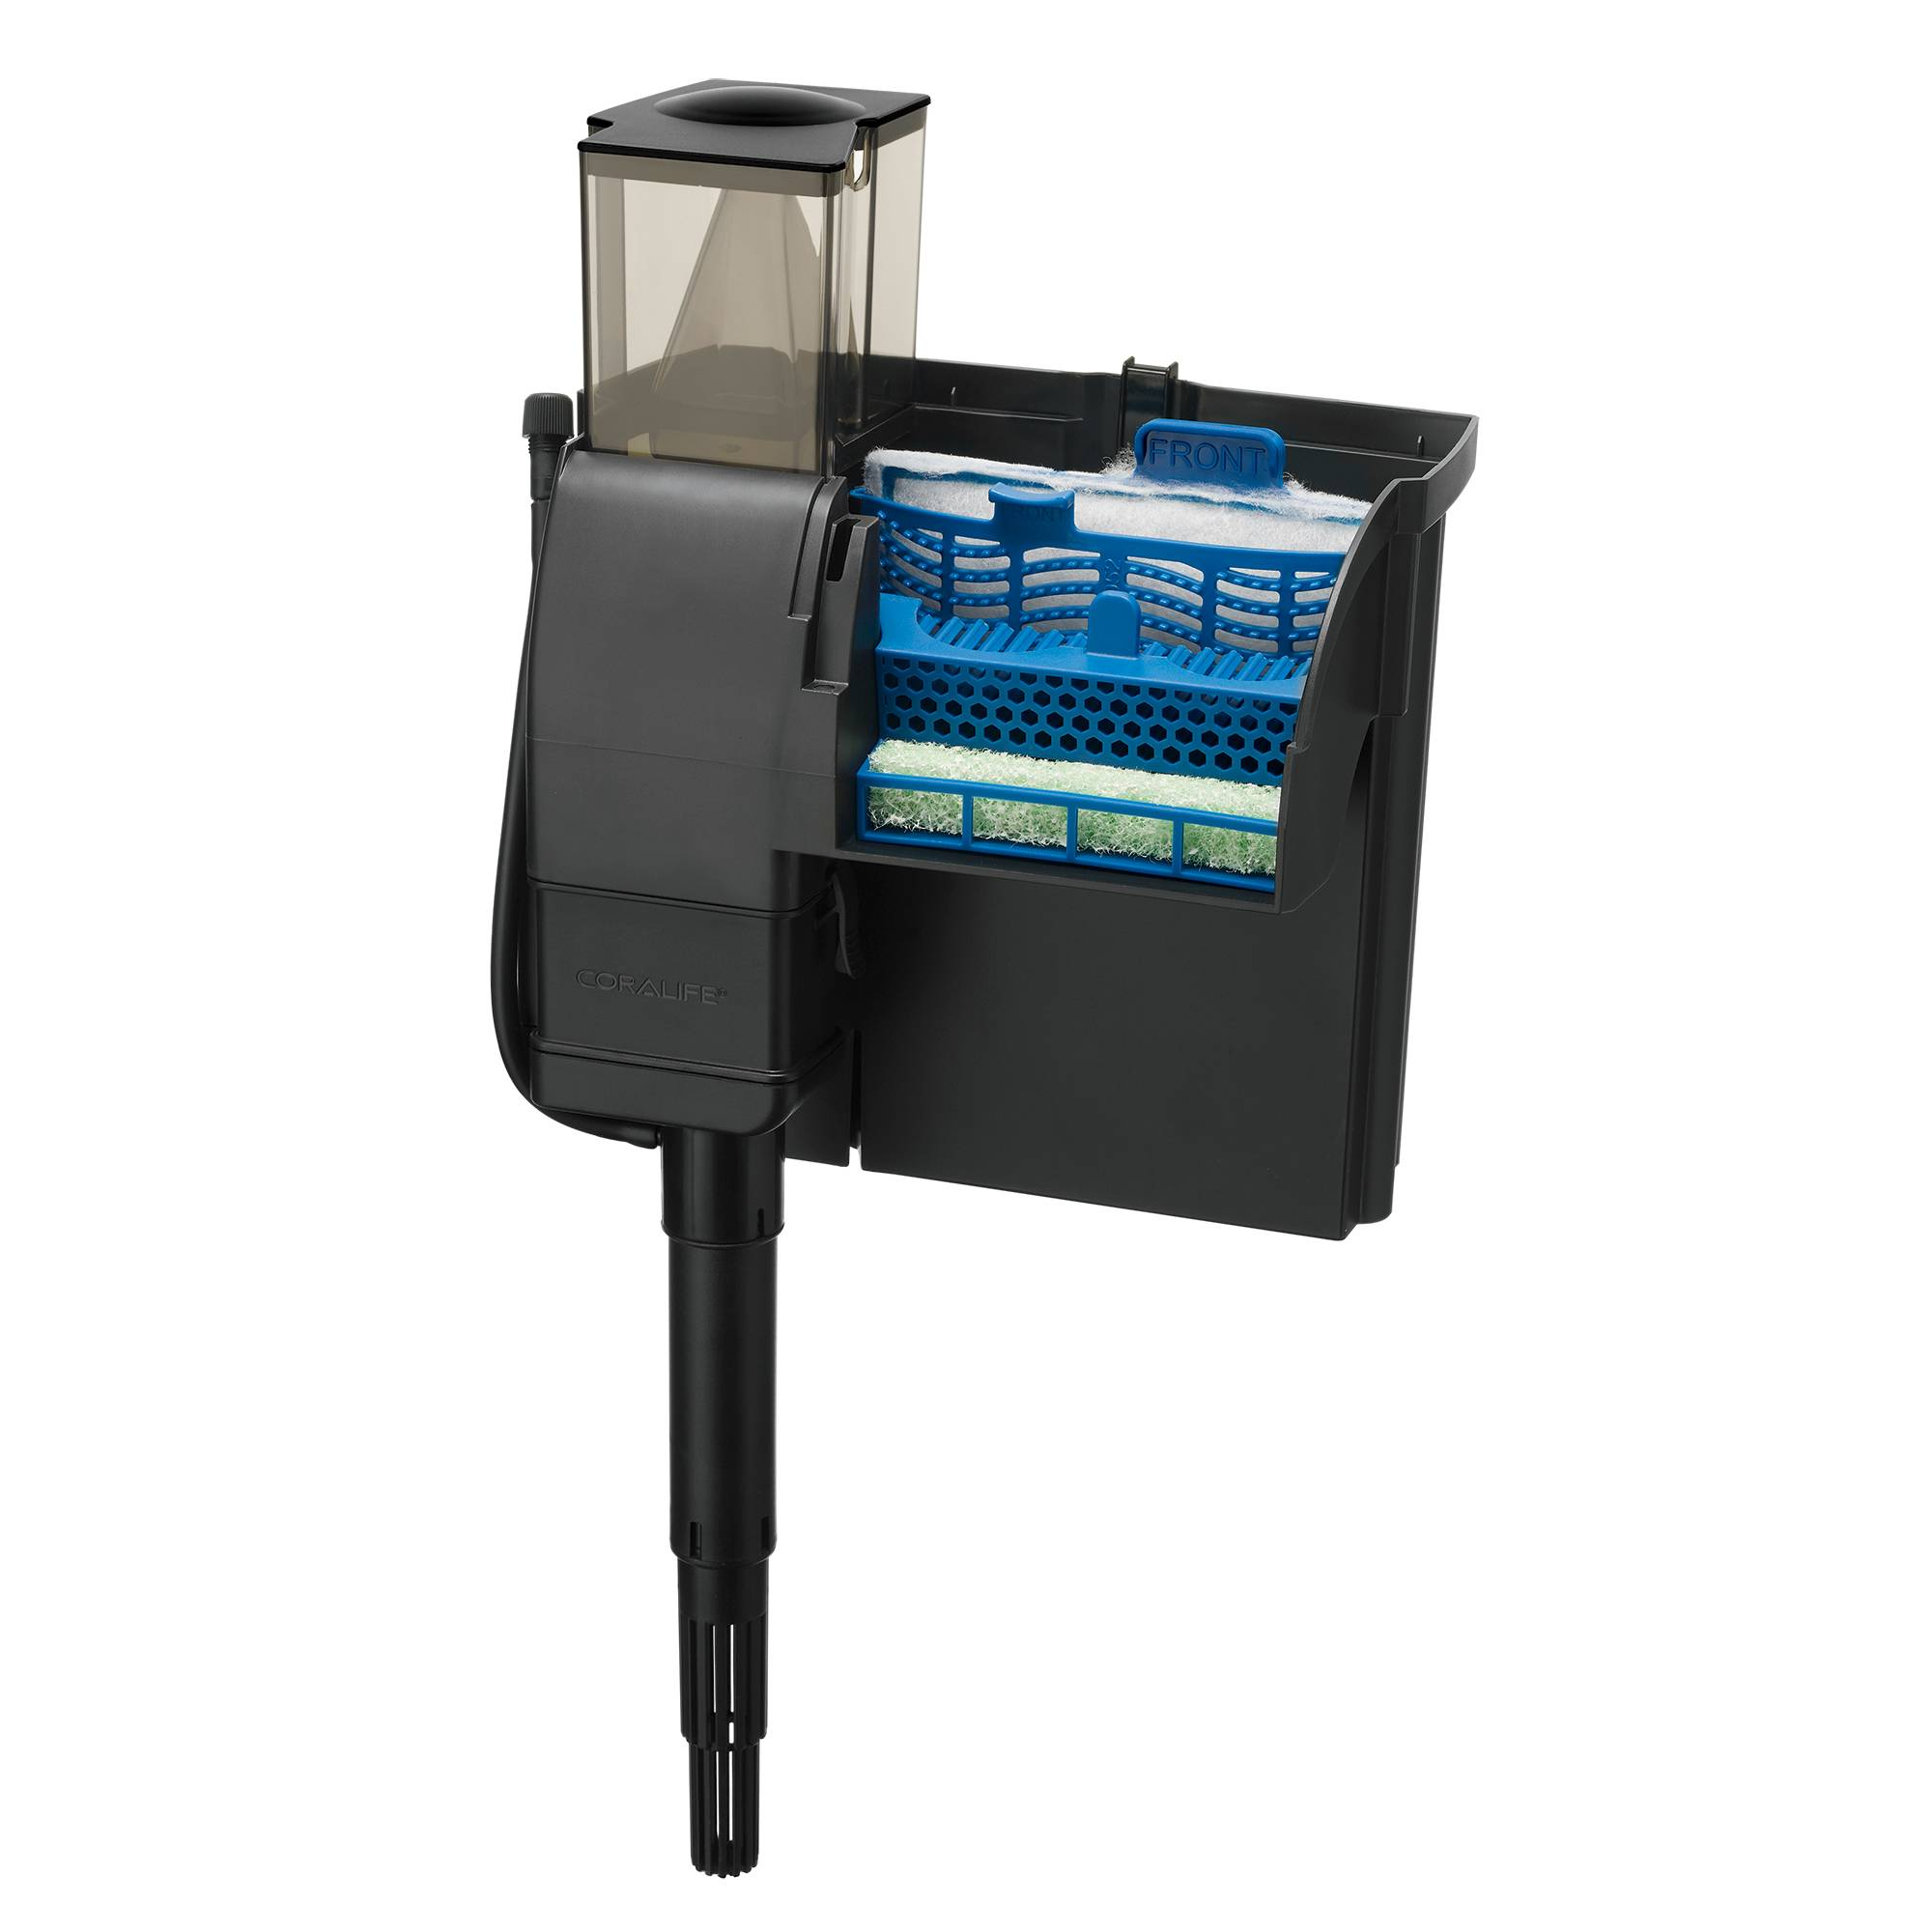 Is it a Protein Skimmer or Power Filter? Both! Meet the Compact 2-in-1 Coralife Marine Filter